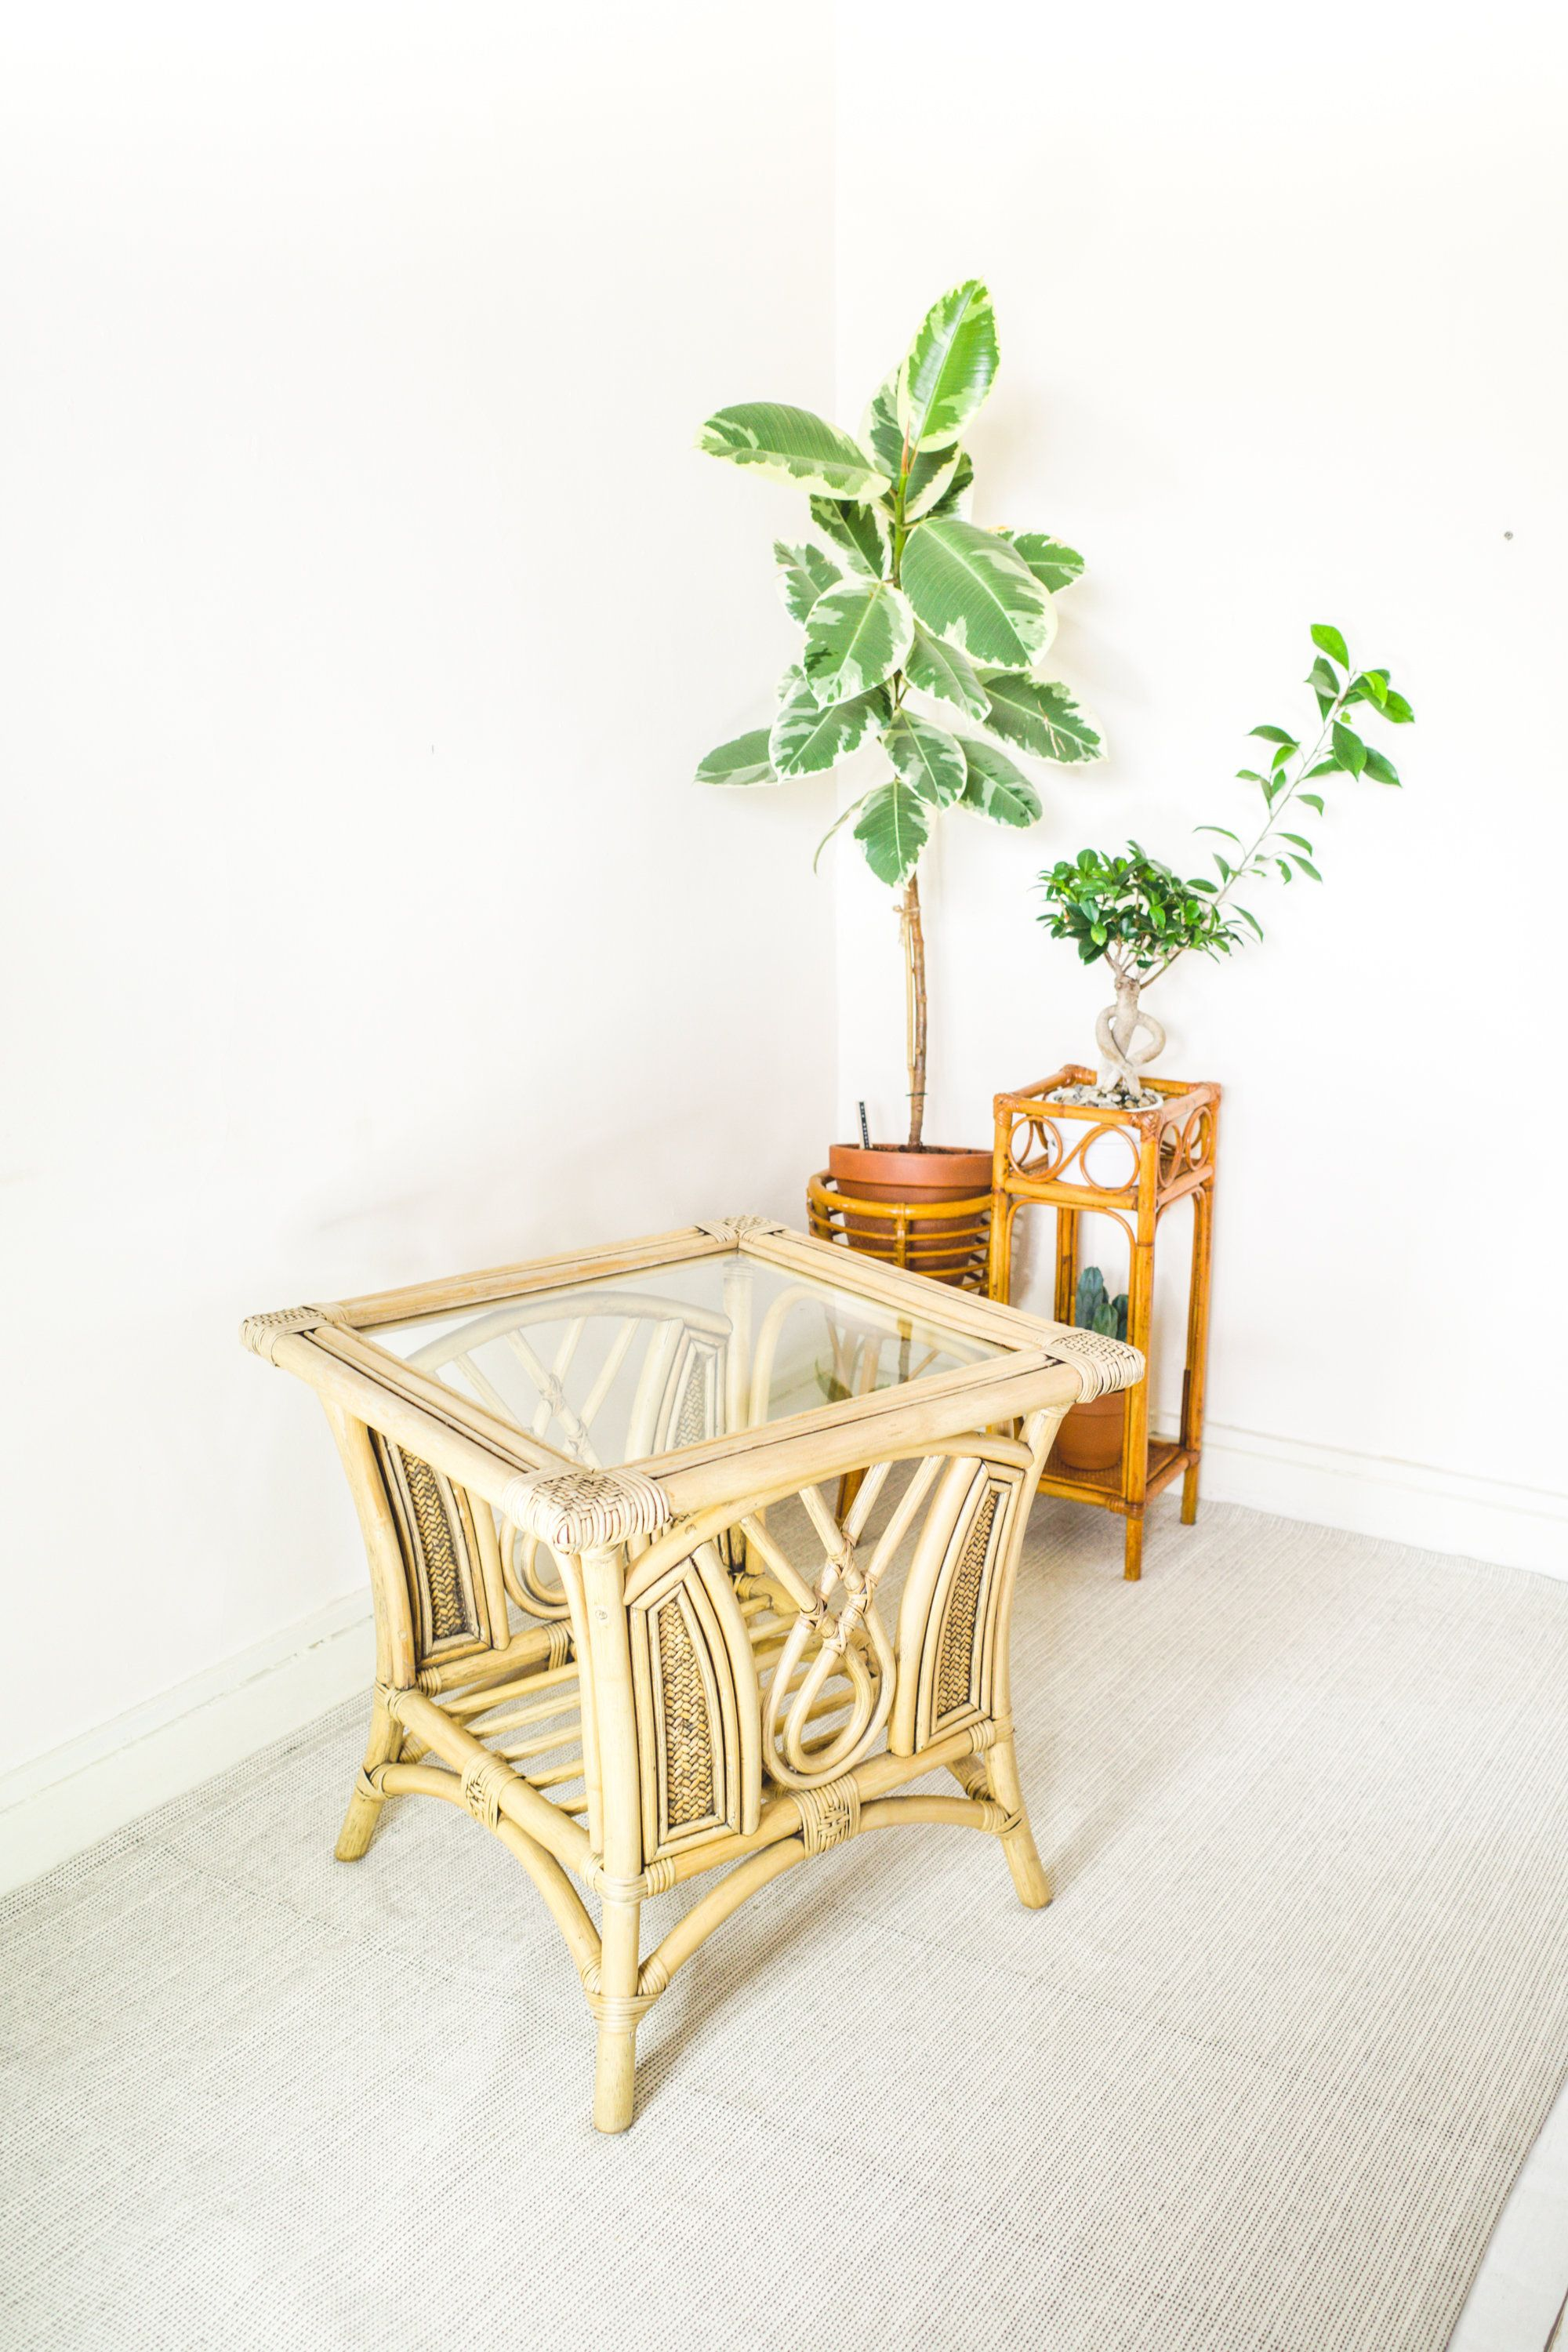 Mid Century Bamboo Cane Glass Top Coffee Table Wicker Side Table Rattan Plant Stand Vintage Boho Hom Wicker Side Table Glass Top Coffee Table Bamboo Canes [ 3000 x 2000 Pixel ]